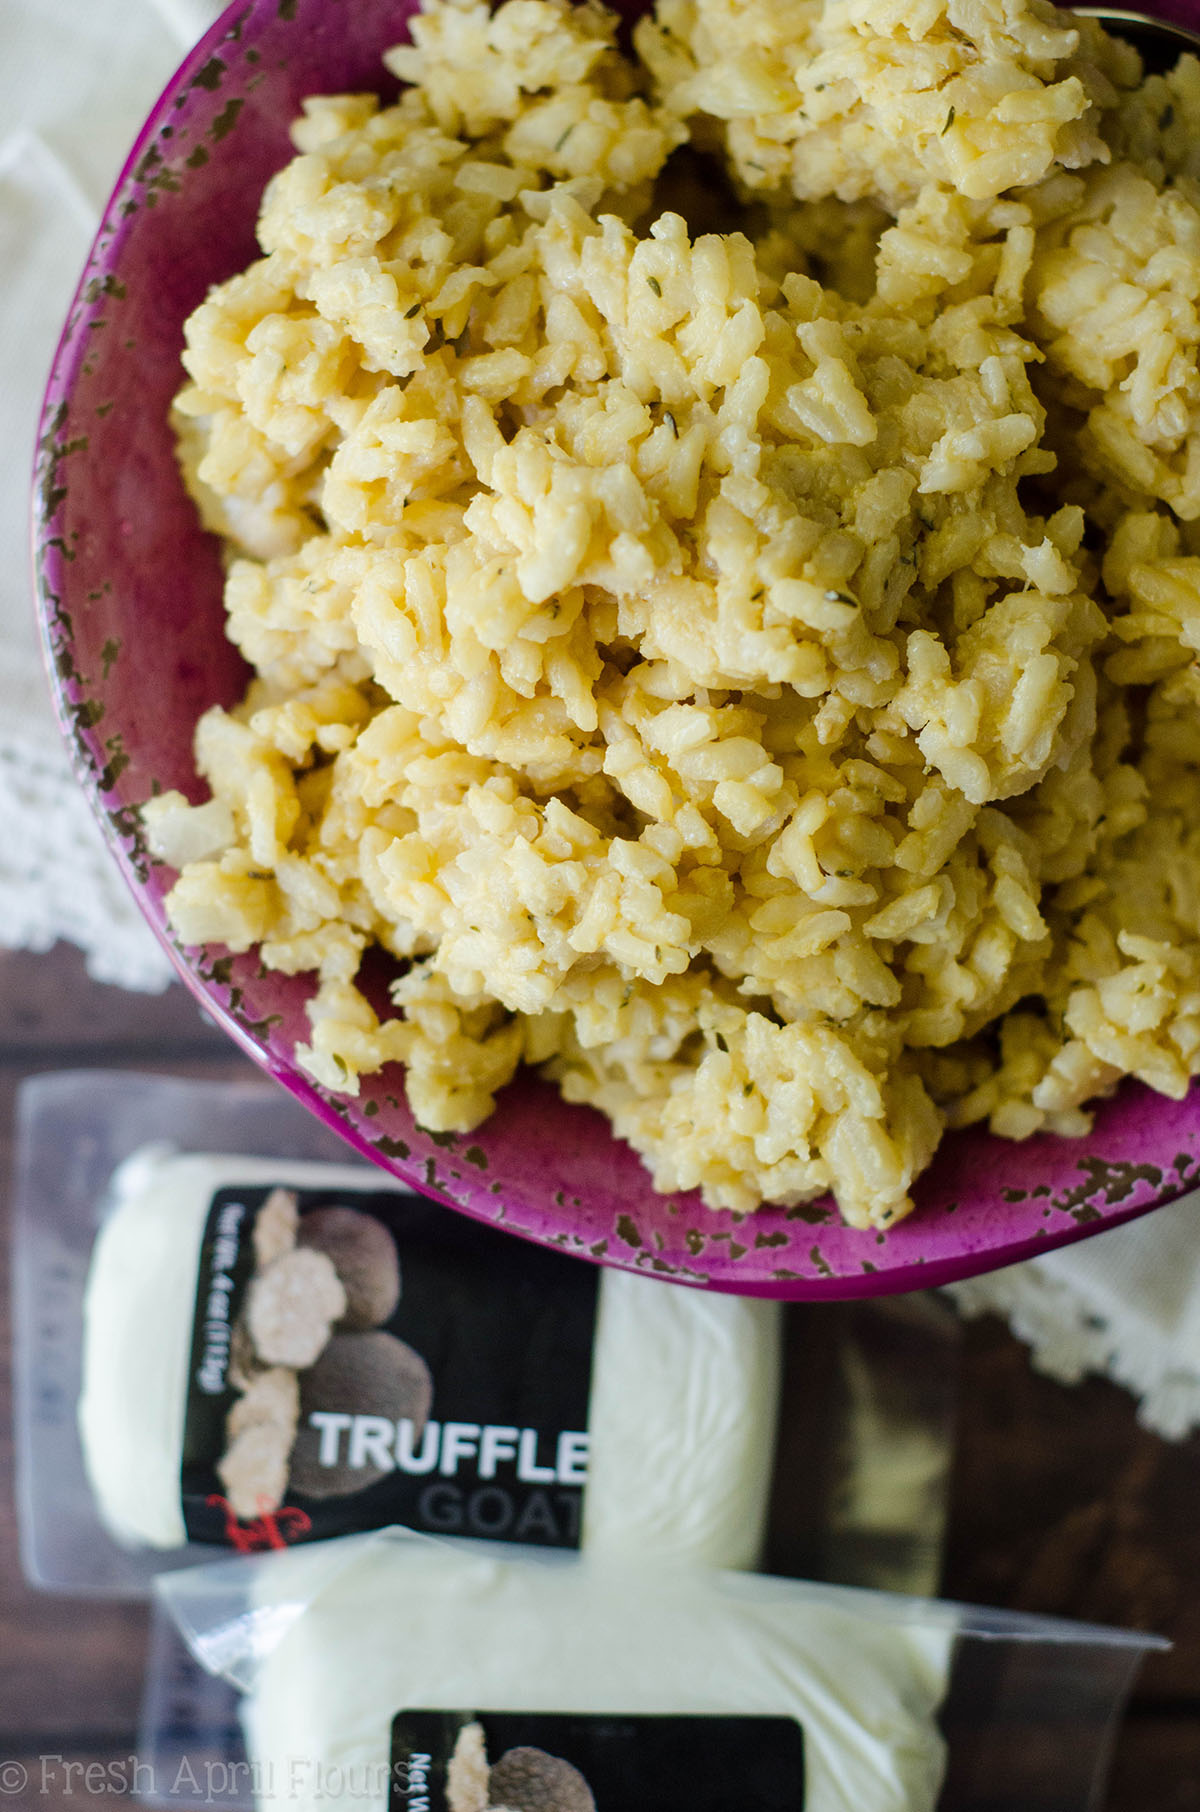 Truffle Goat Cheese Risotto: Classic risotto gets a jazzy makeover with creamy goat cheese and earthy truffle notes.